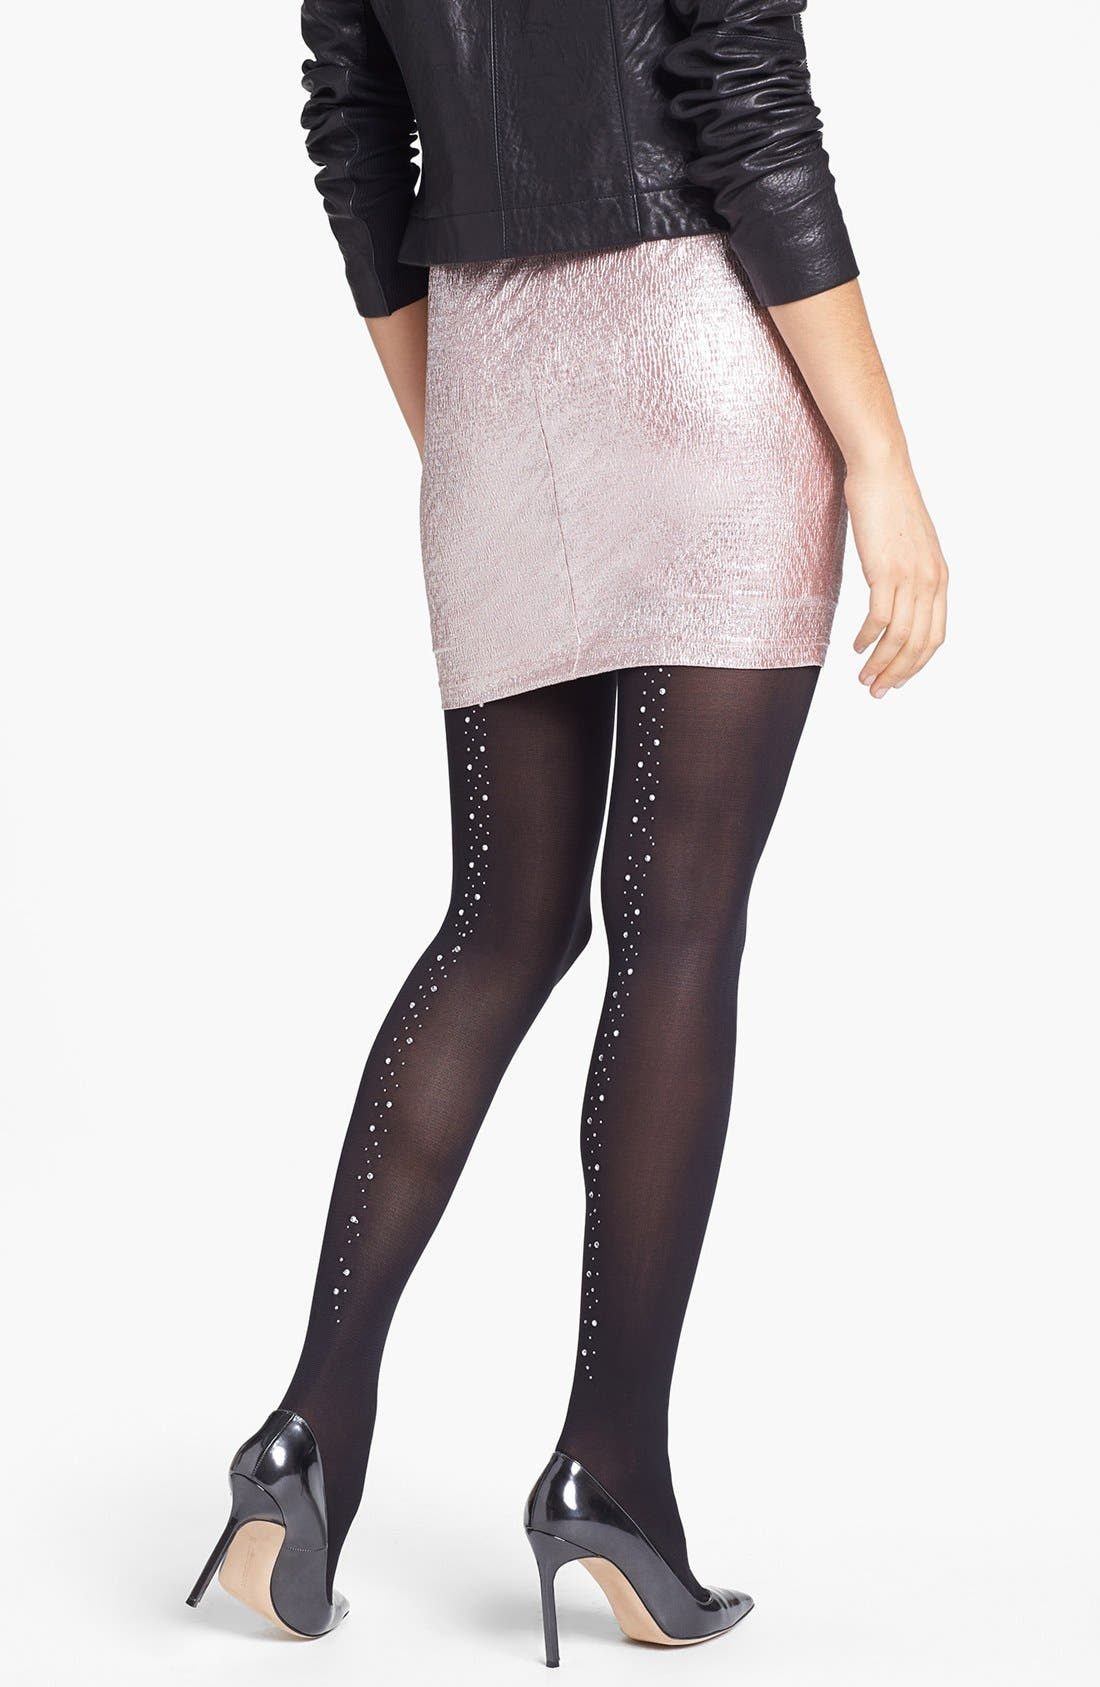 Alternate Image 1 Selected - Pretty Polly Embellished Back Seam Tights